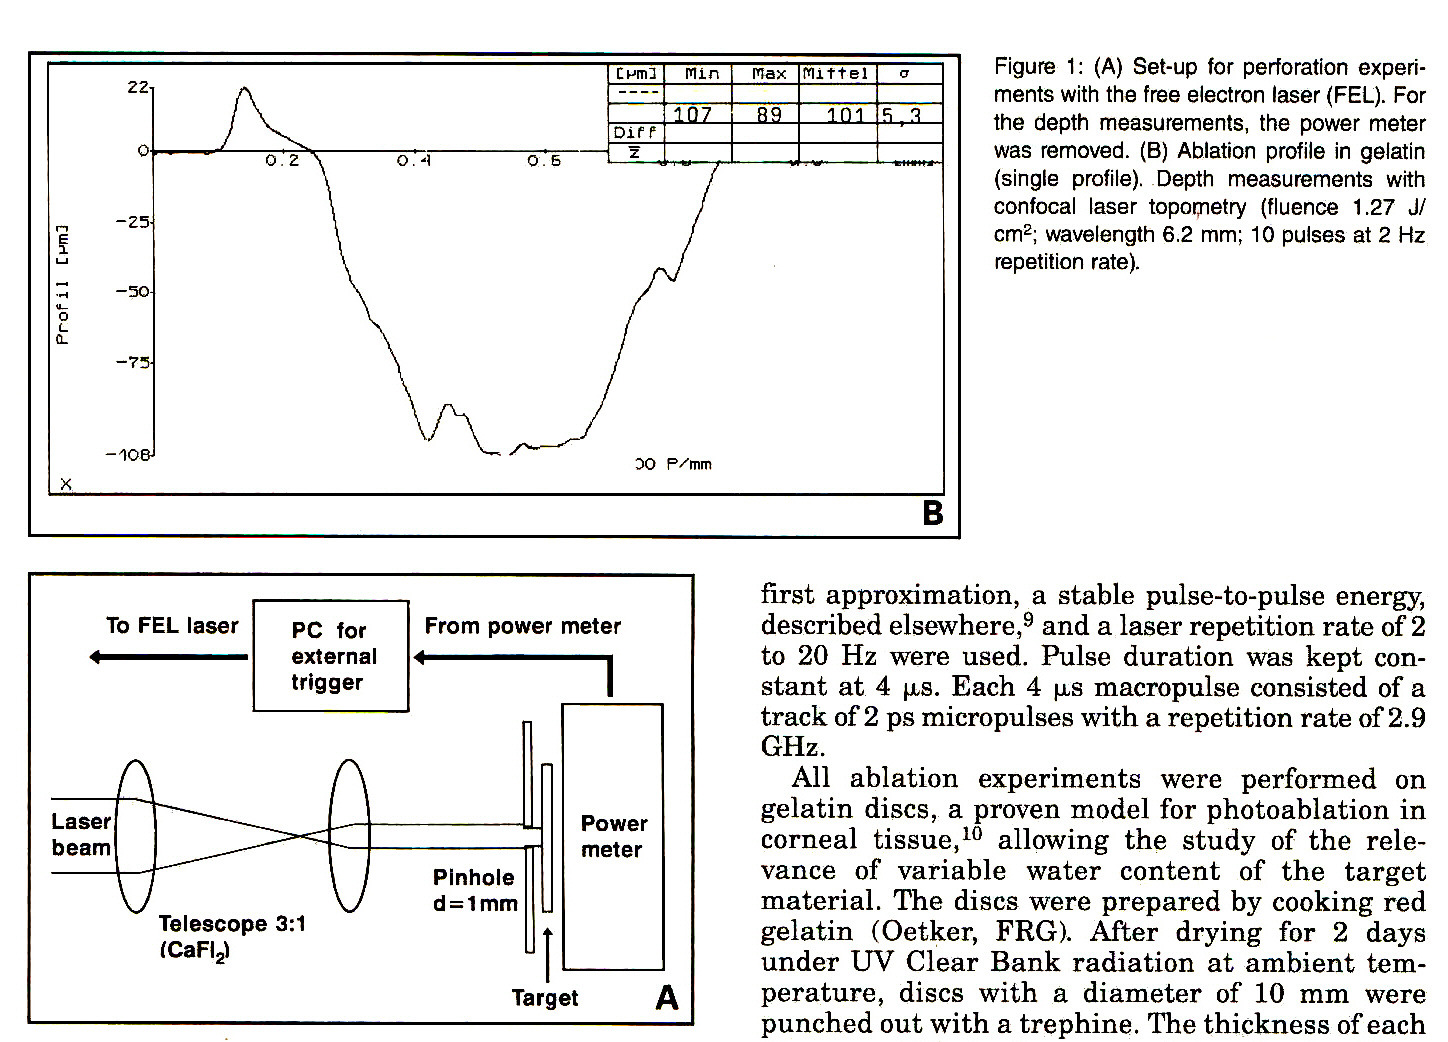 Figure 1: (A) Set-up for perforation experiments with the free electron laser (FEL). For the depth measurements, the power meter was removed. (B) Ablation profile in gelatin (single profile). Depth measurements with confocal laser topometry (fluence 1.27 J/ cmp 2; wavelength 6.2 mm; 10 pulses at 2 Hz repetition rate).